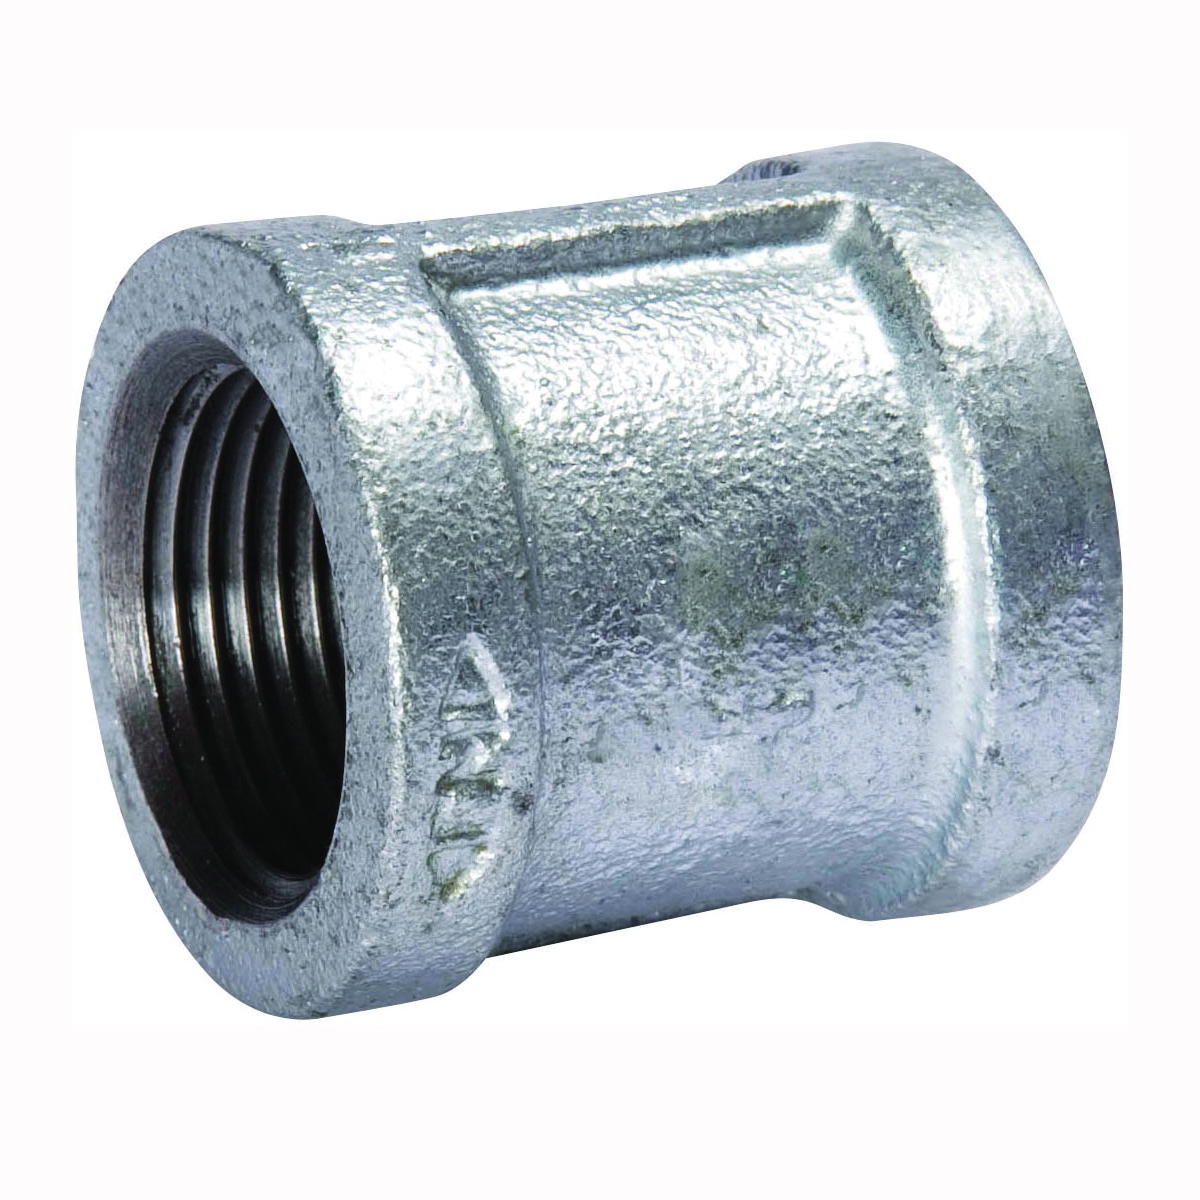 Picture of B & K 511-210BC Pipe Coupler, 3 in, Threaded, 150 psi Pressure